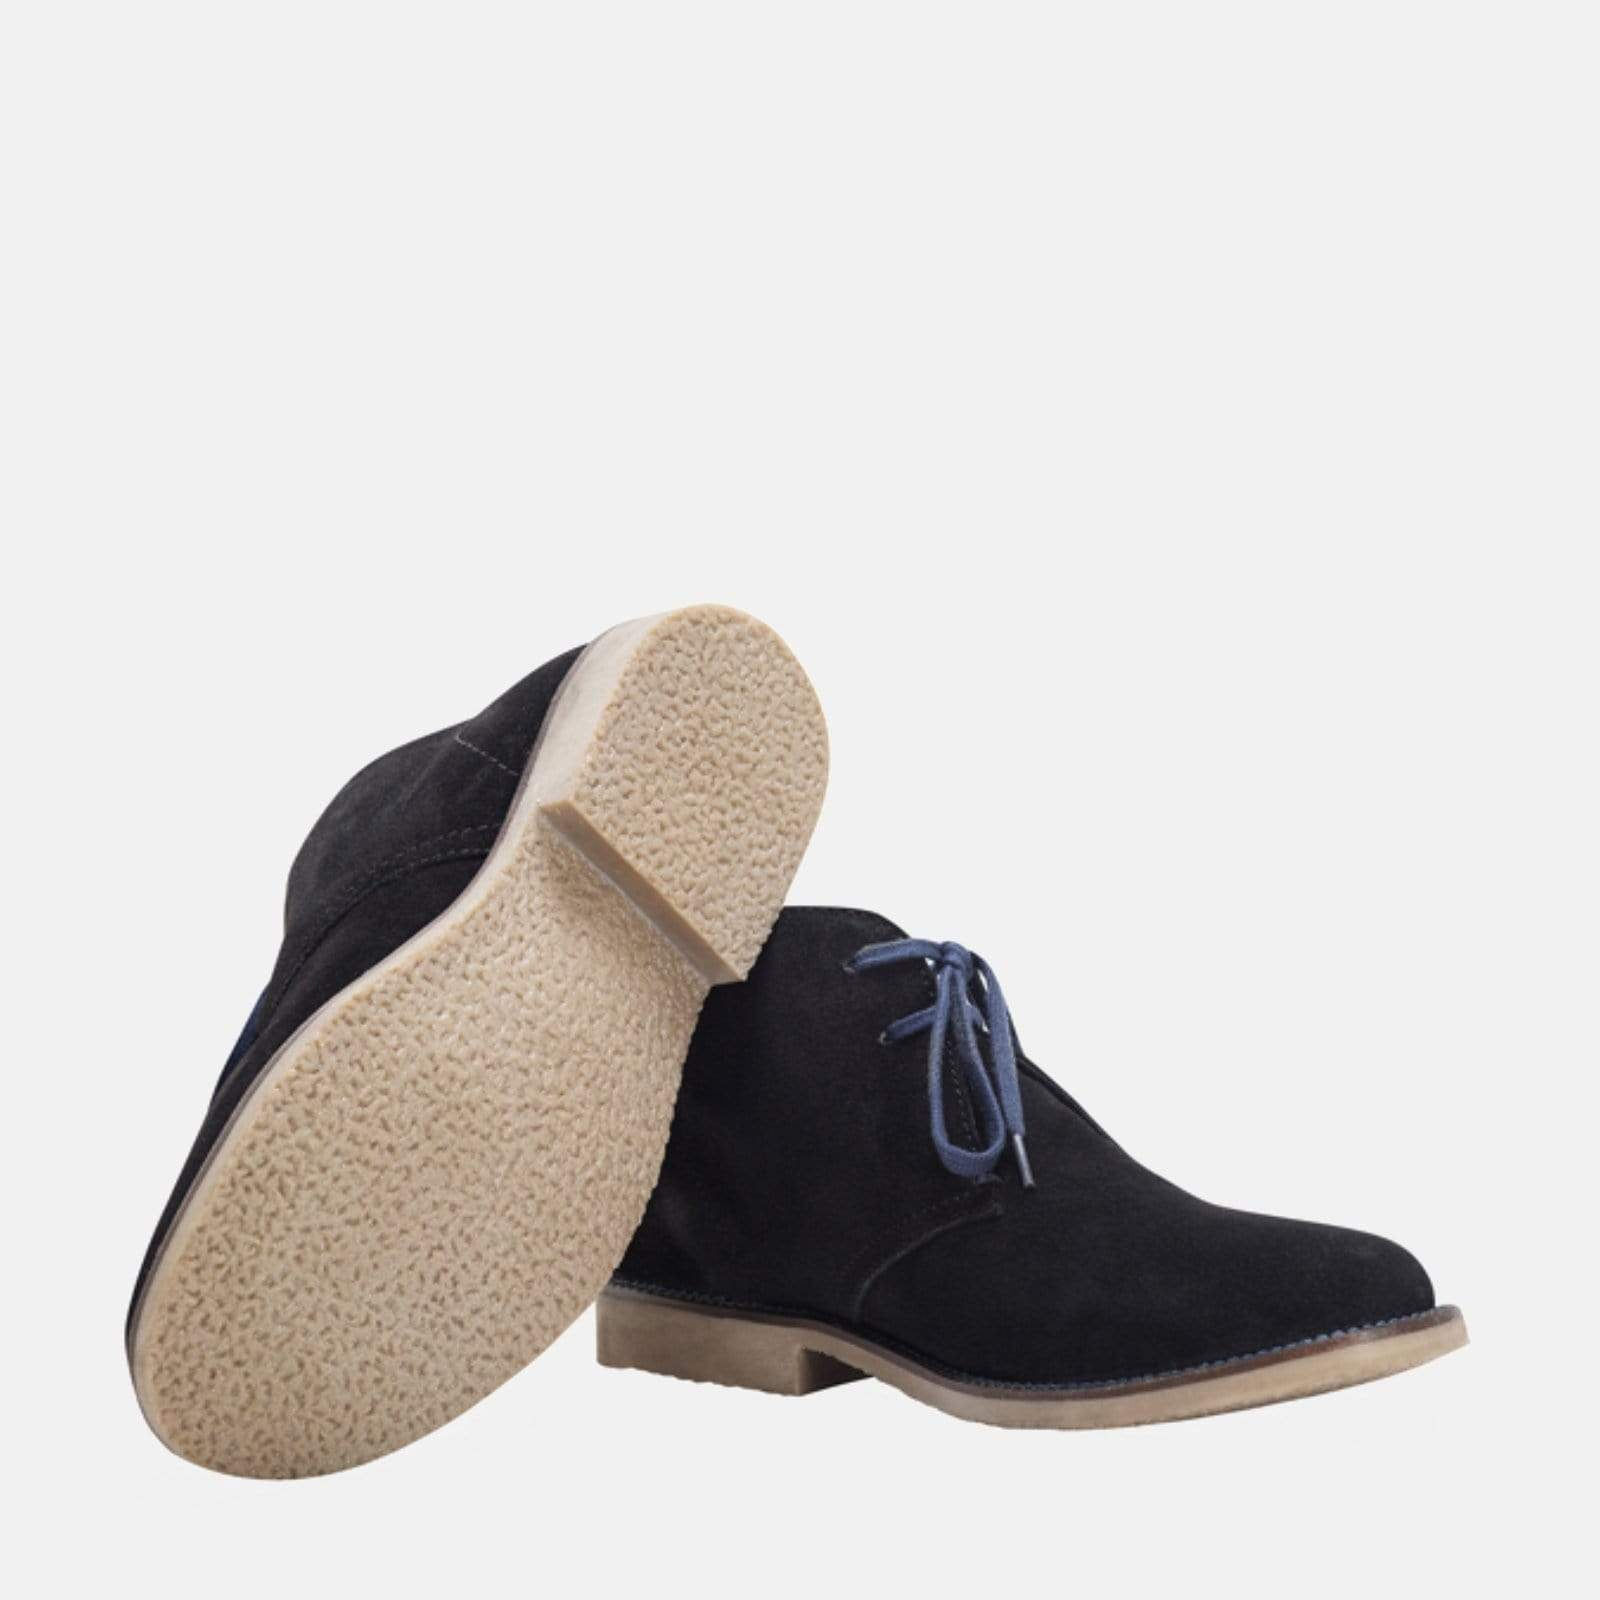 Redfoot Footwear ASHTON BLACK (blue laces)